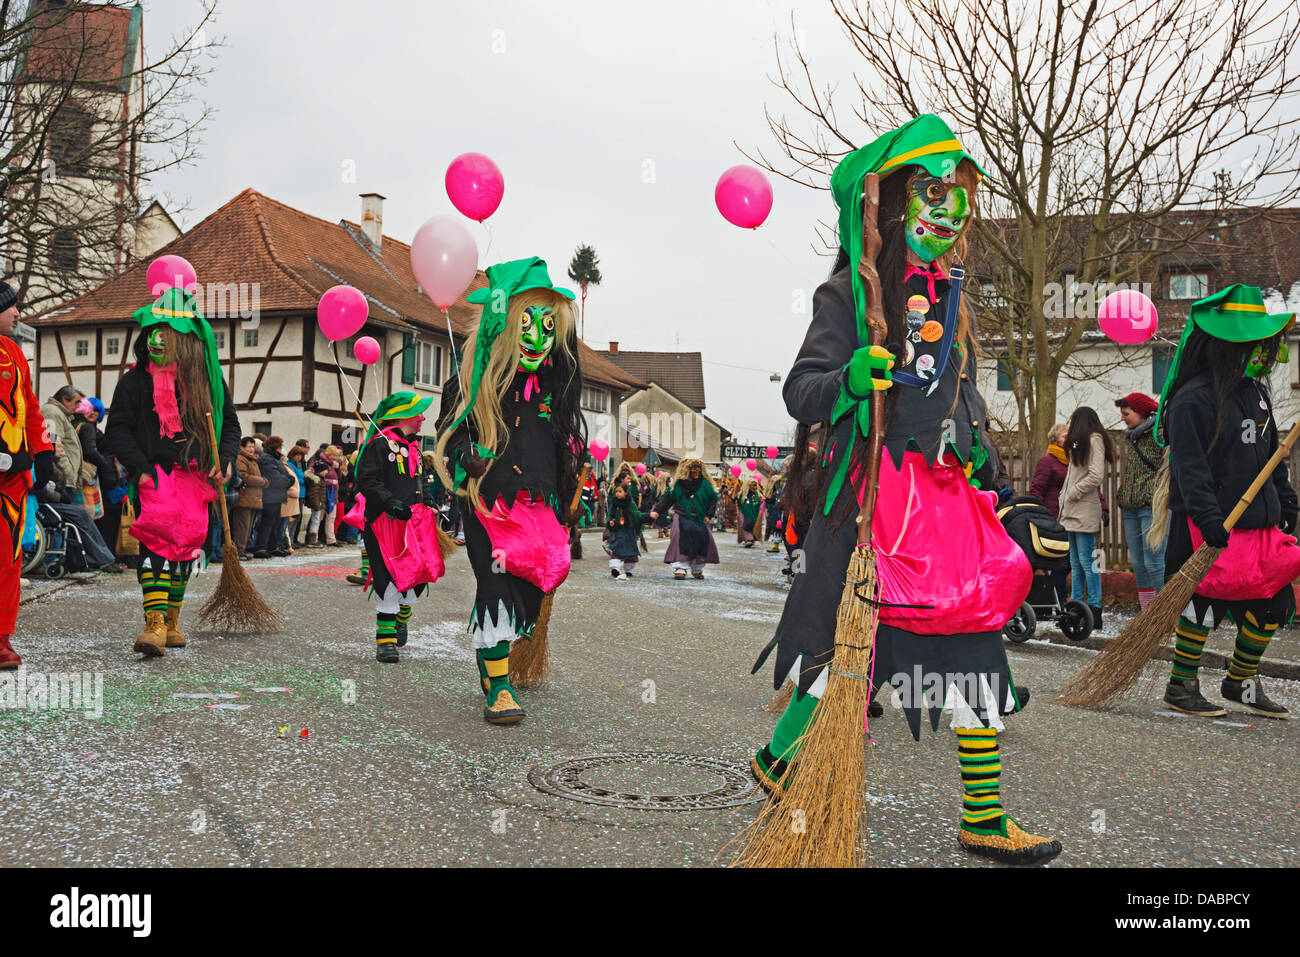 Fasnact spring carnival parade, Weil am Rhein, Baden-Wurttemberg, Germany, Europe - Stock Image